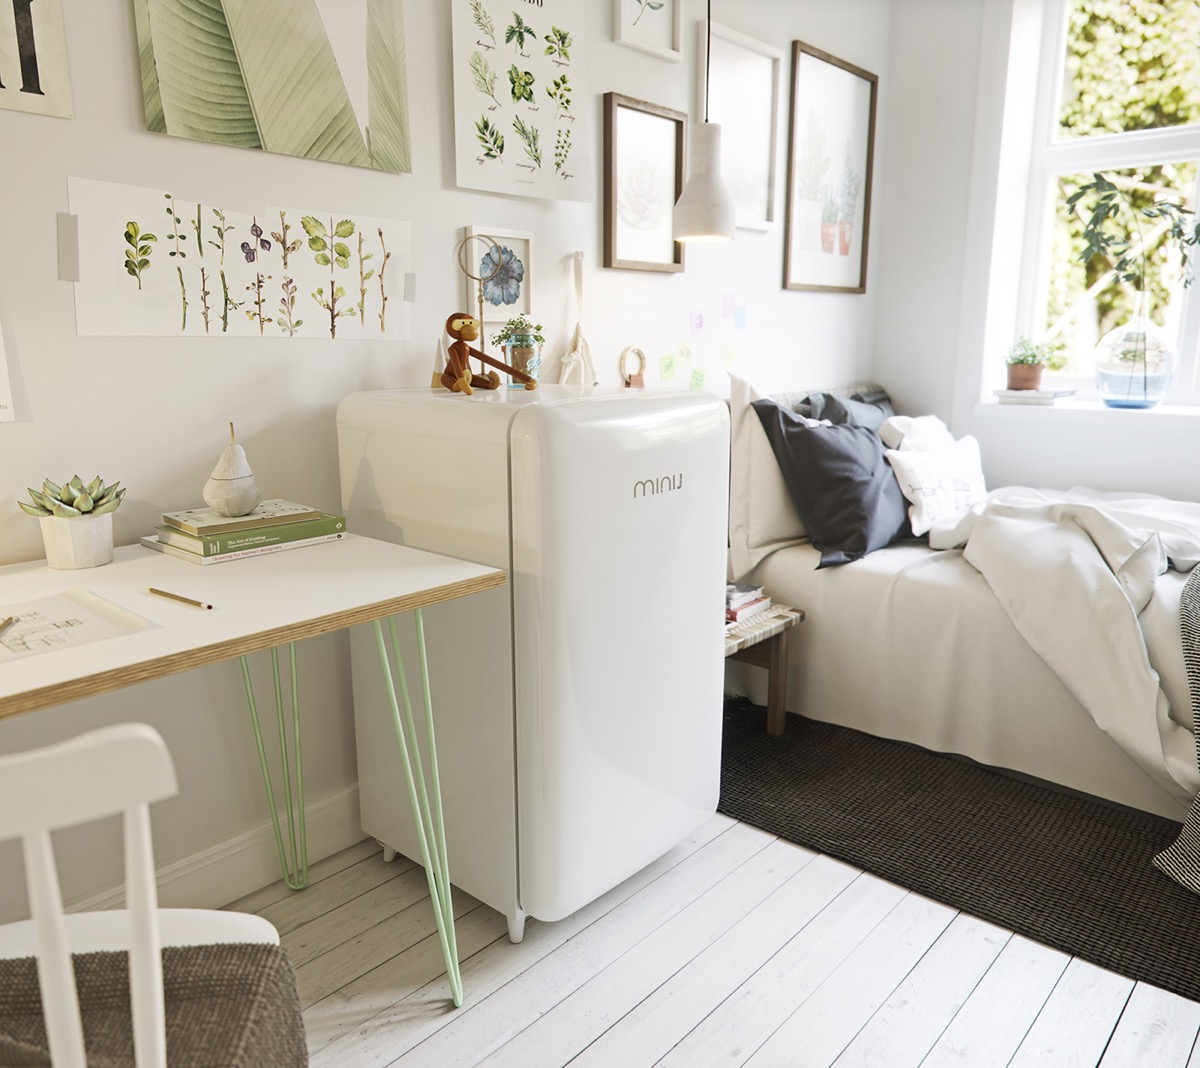 White Mint Desk - Scandinavia meets japan in these minimalist work spaces